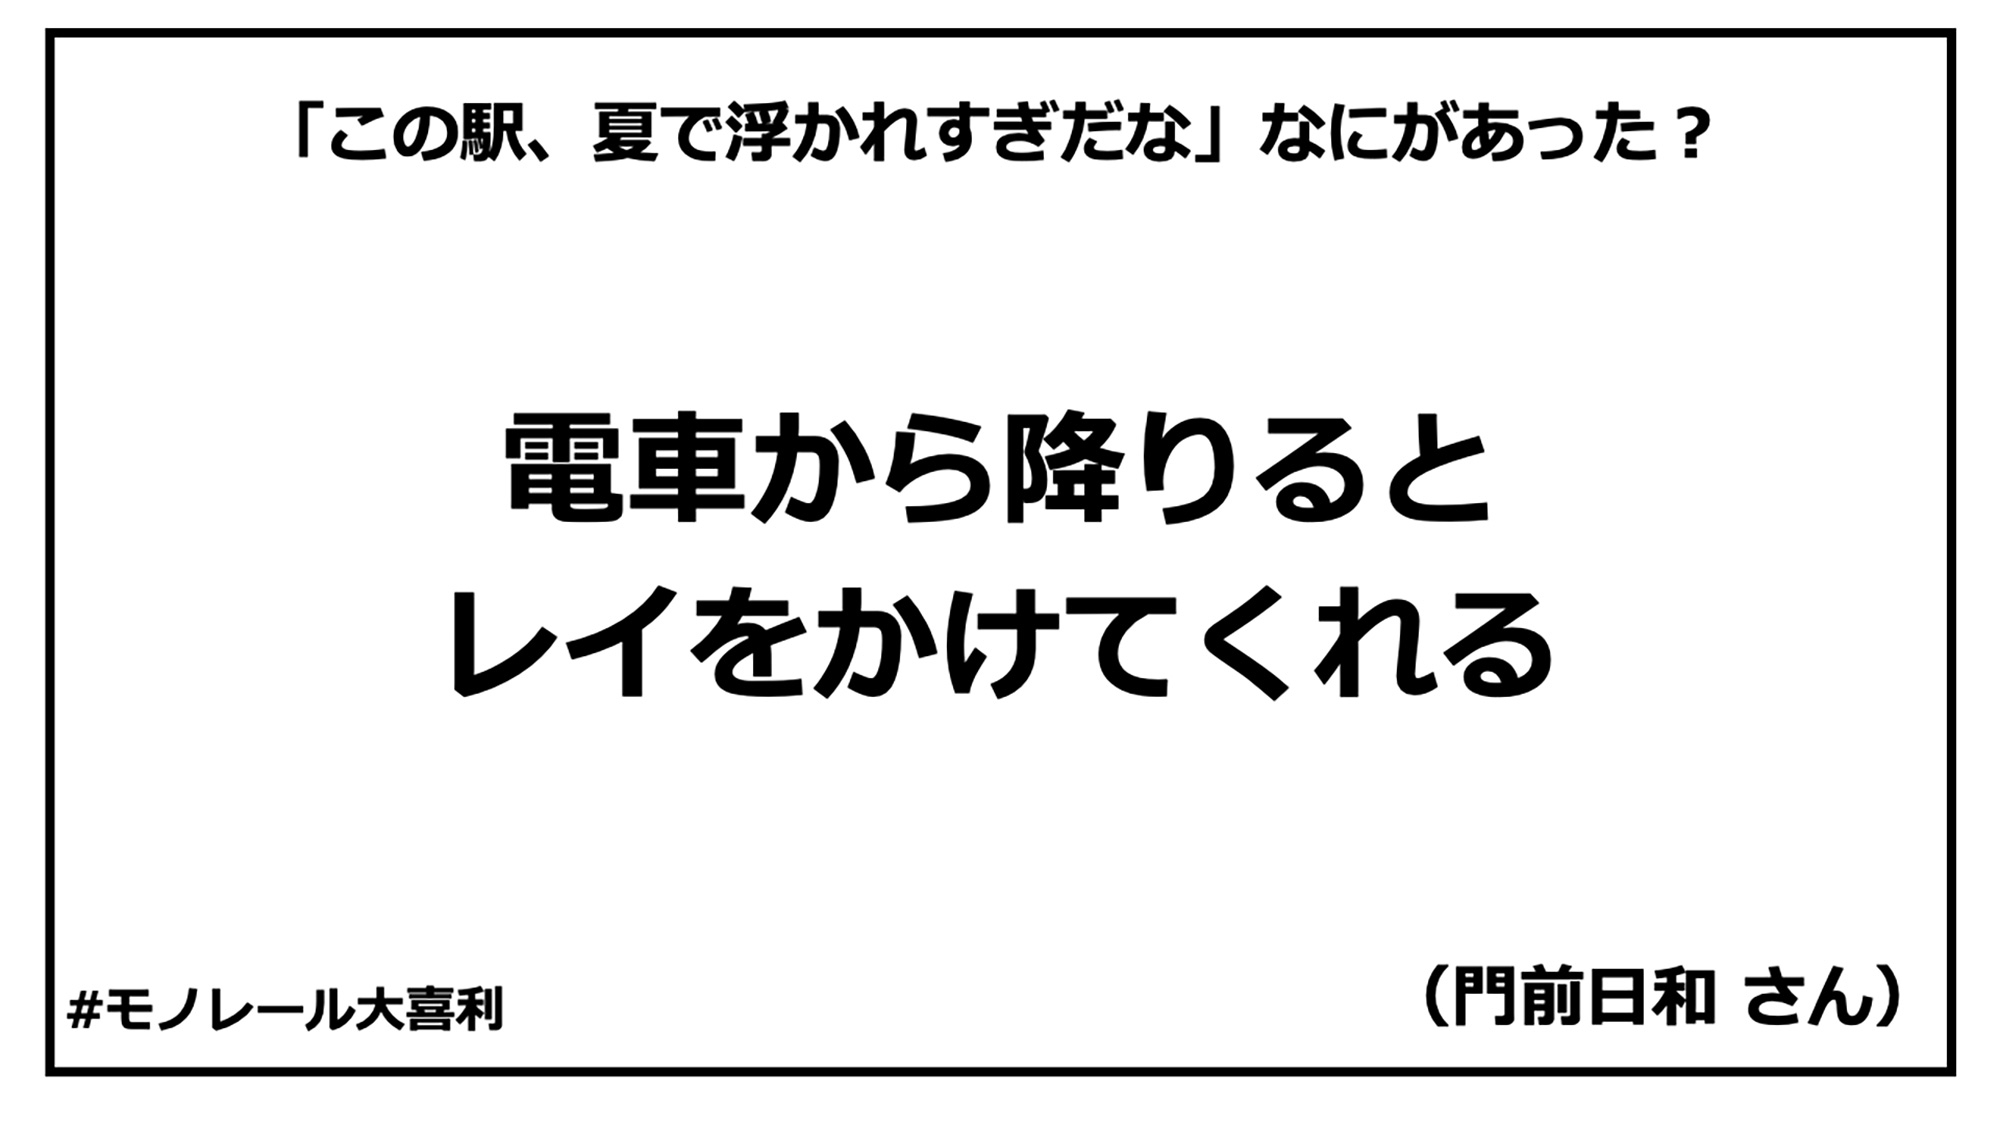 ogiri_answer_26_4.jpg